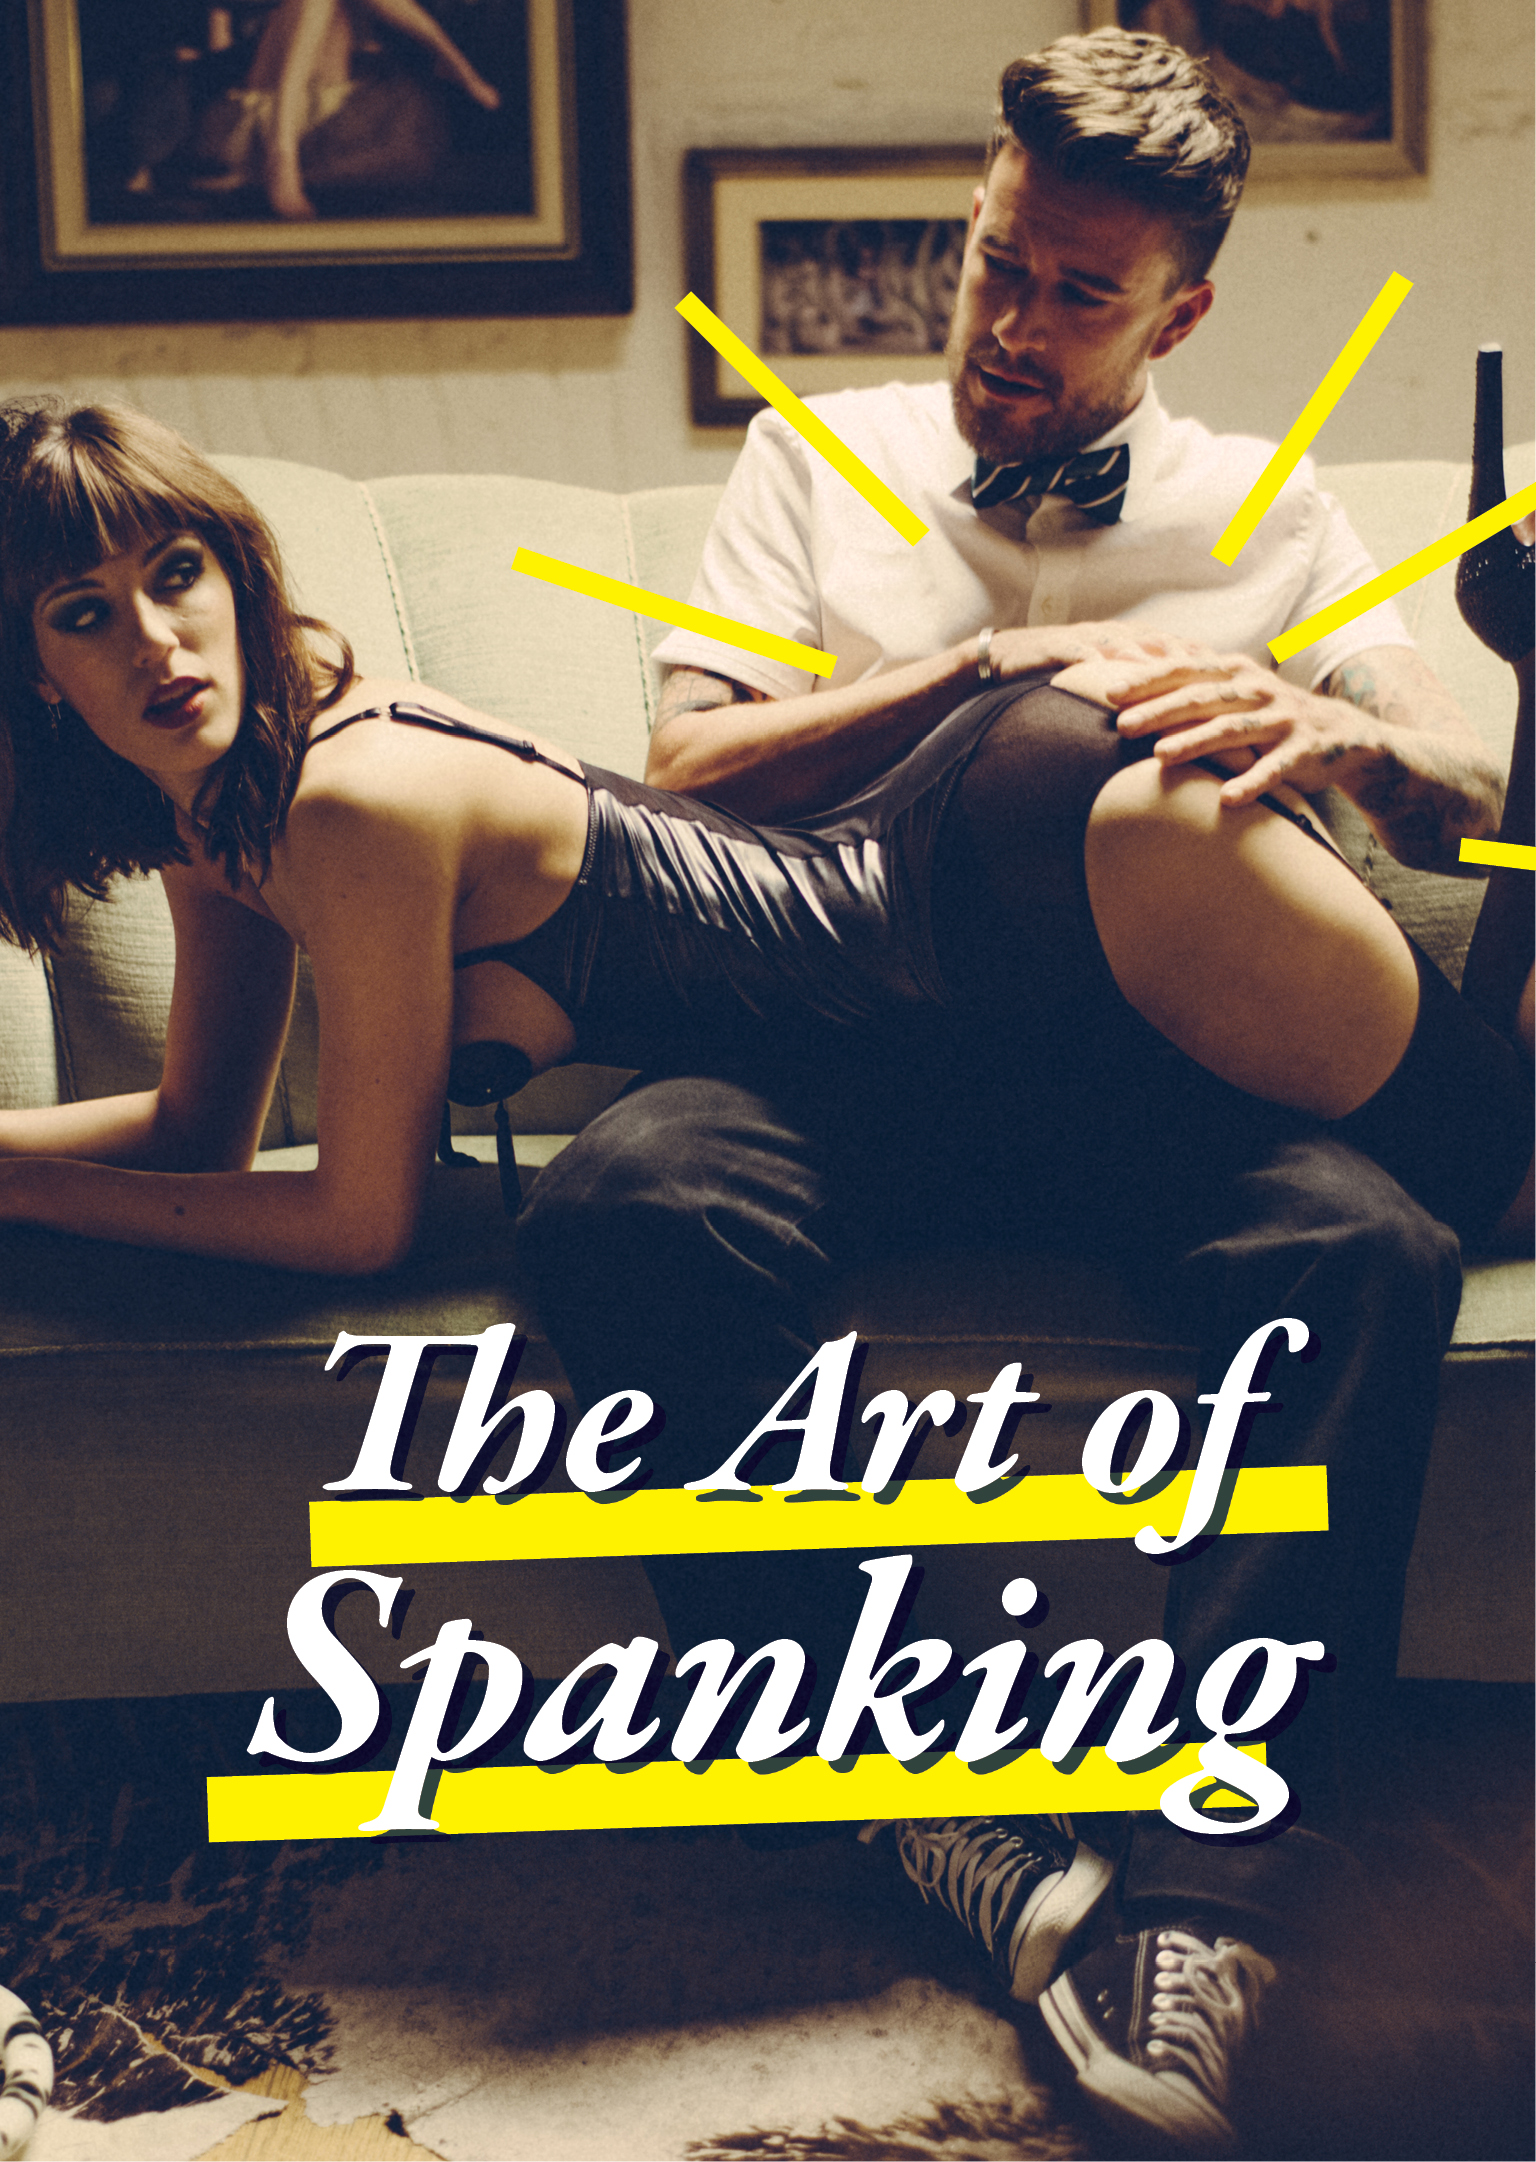 Xconfessions By Erika Lust, The Art Of Spanking